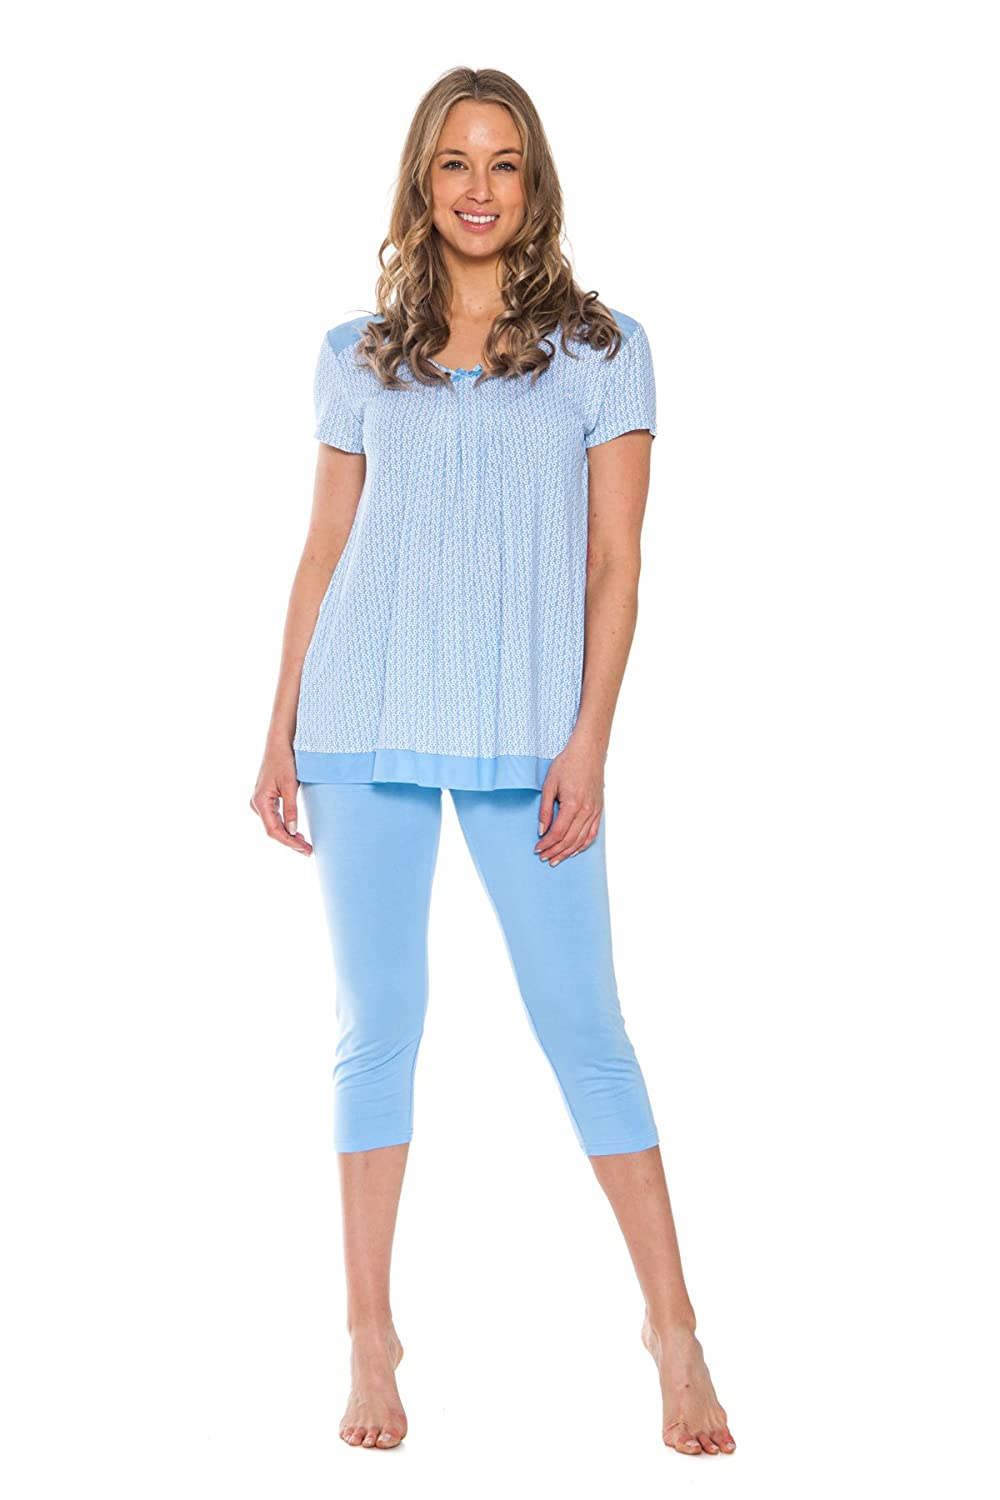 Patricia Women's Pajamas Pj Set 2 Piece Outfit Capri Bottoms Short Sleeve Top